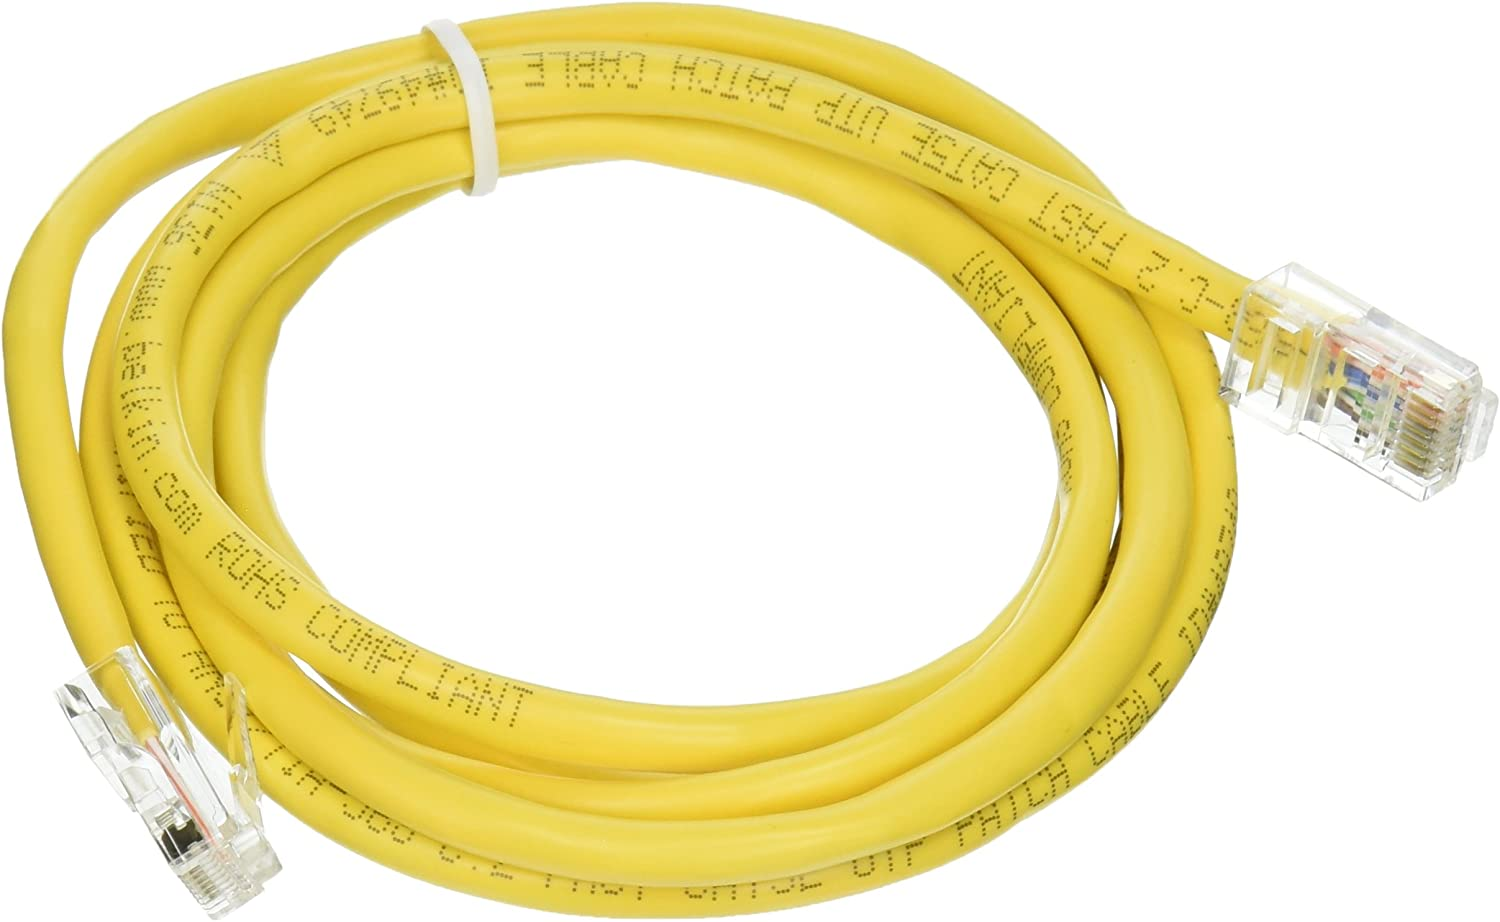 Cable,CAT5E,UTP,RJ45M//M,5,YLW,Patch